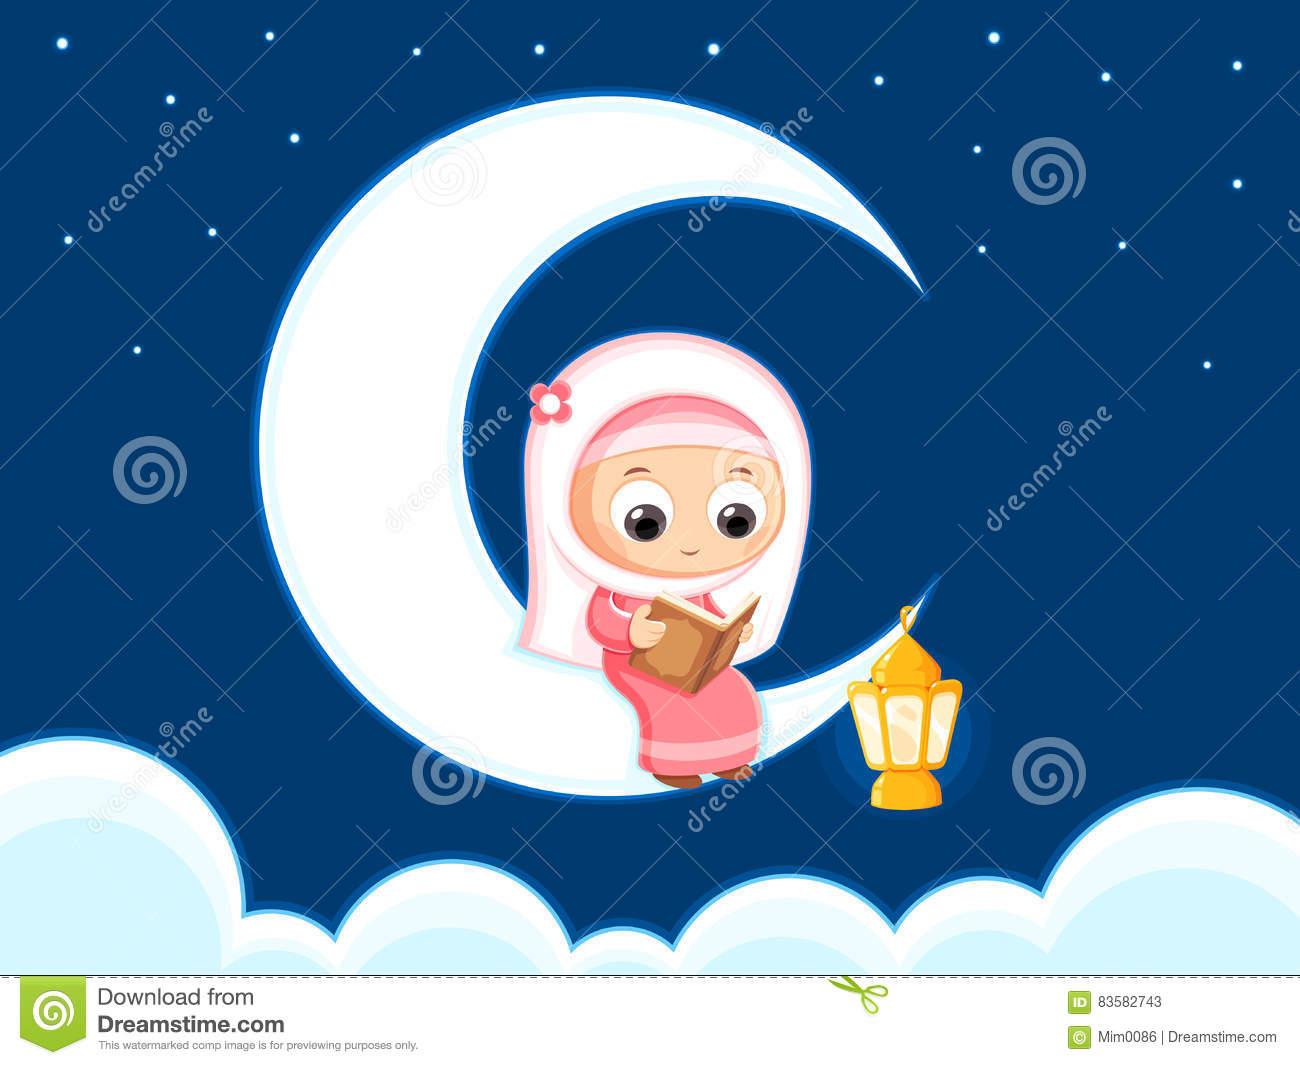 happy jack single muslim girls Download 410,924 baby girl stock photos for free or amazingly low  royalty-free editorial exclusive extended  beautiful happy smiling arab muslim mother hug.